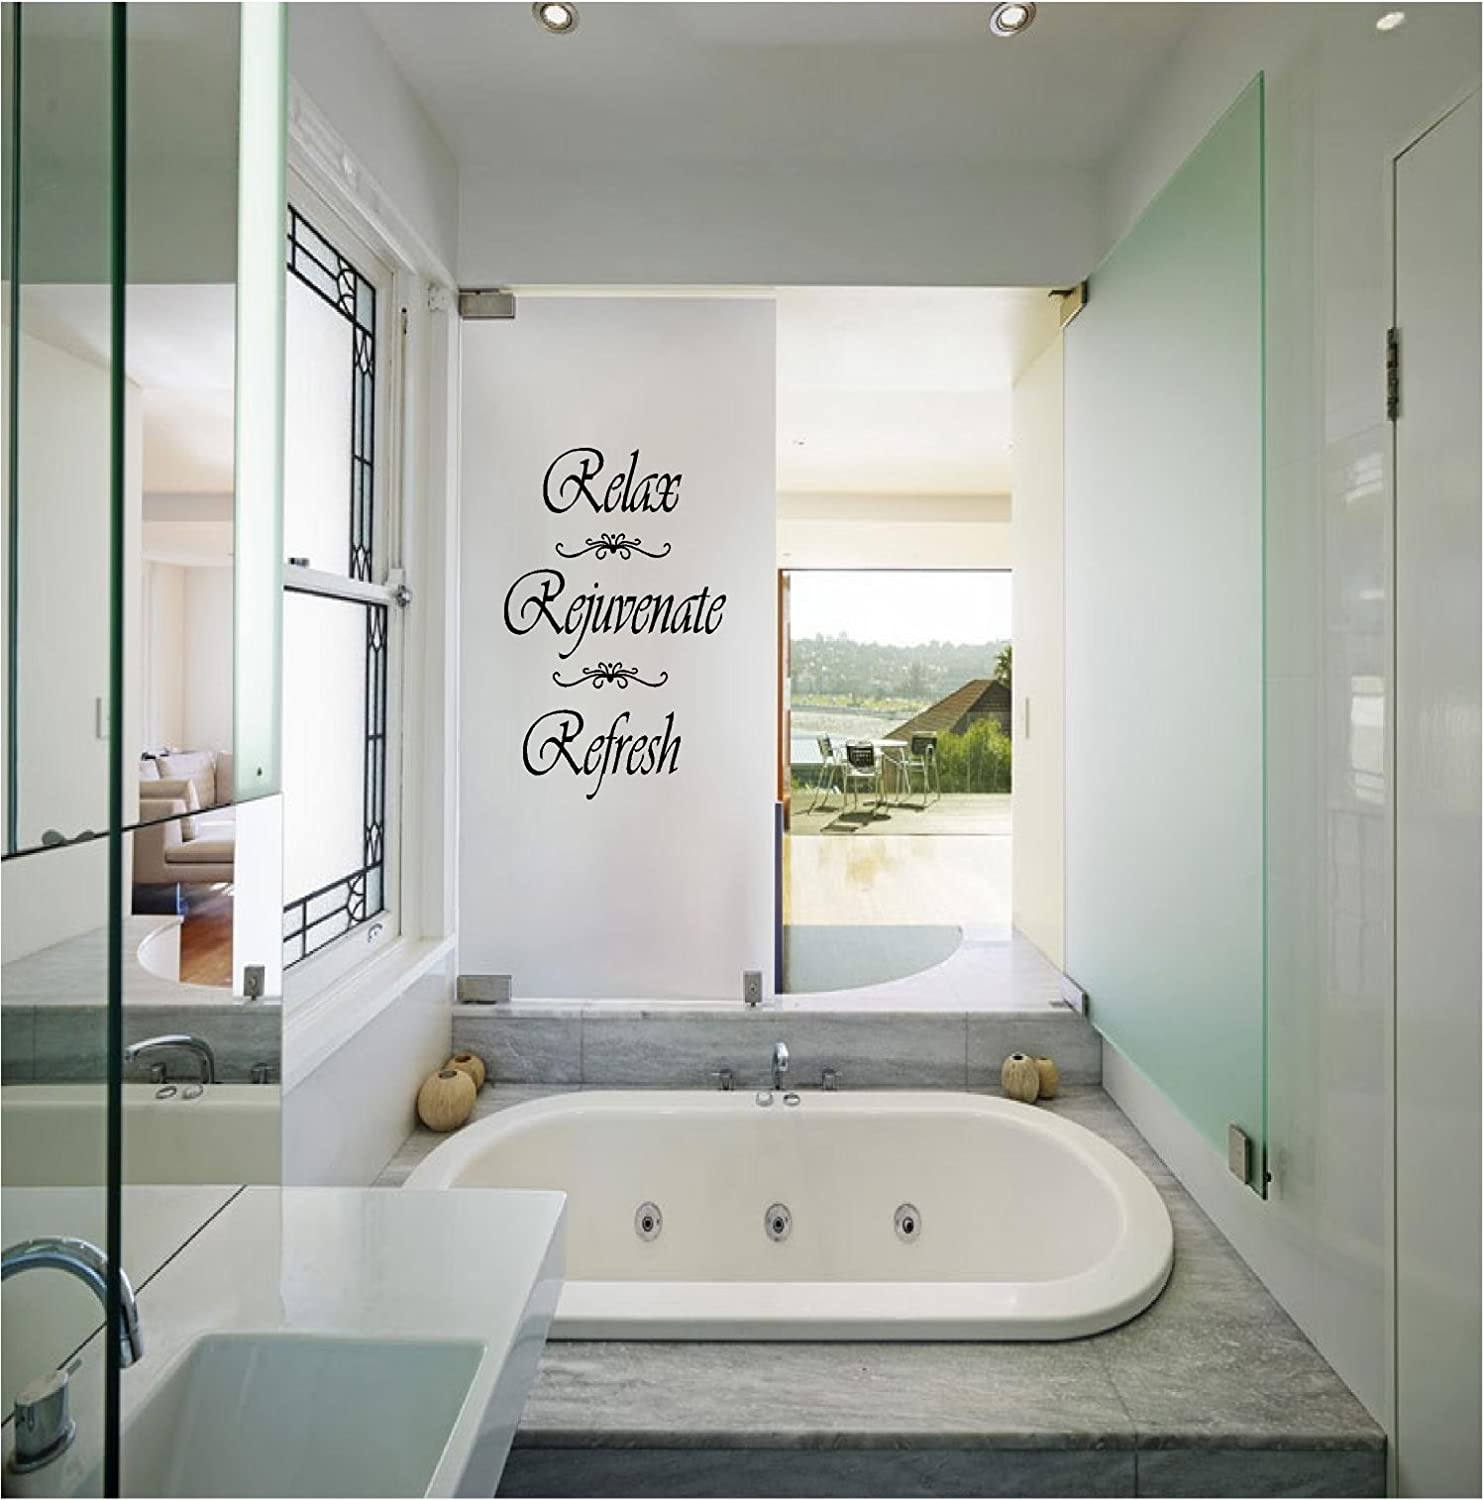 Quote It! - Relax, Rejuvenate, Refresh Wall Decals Quotes